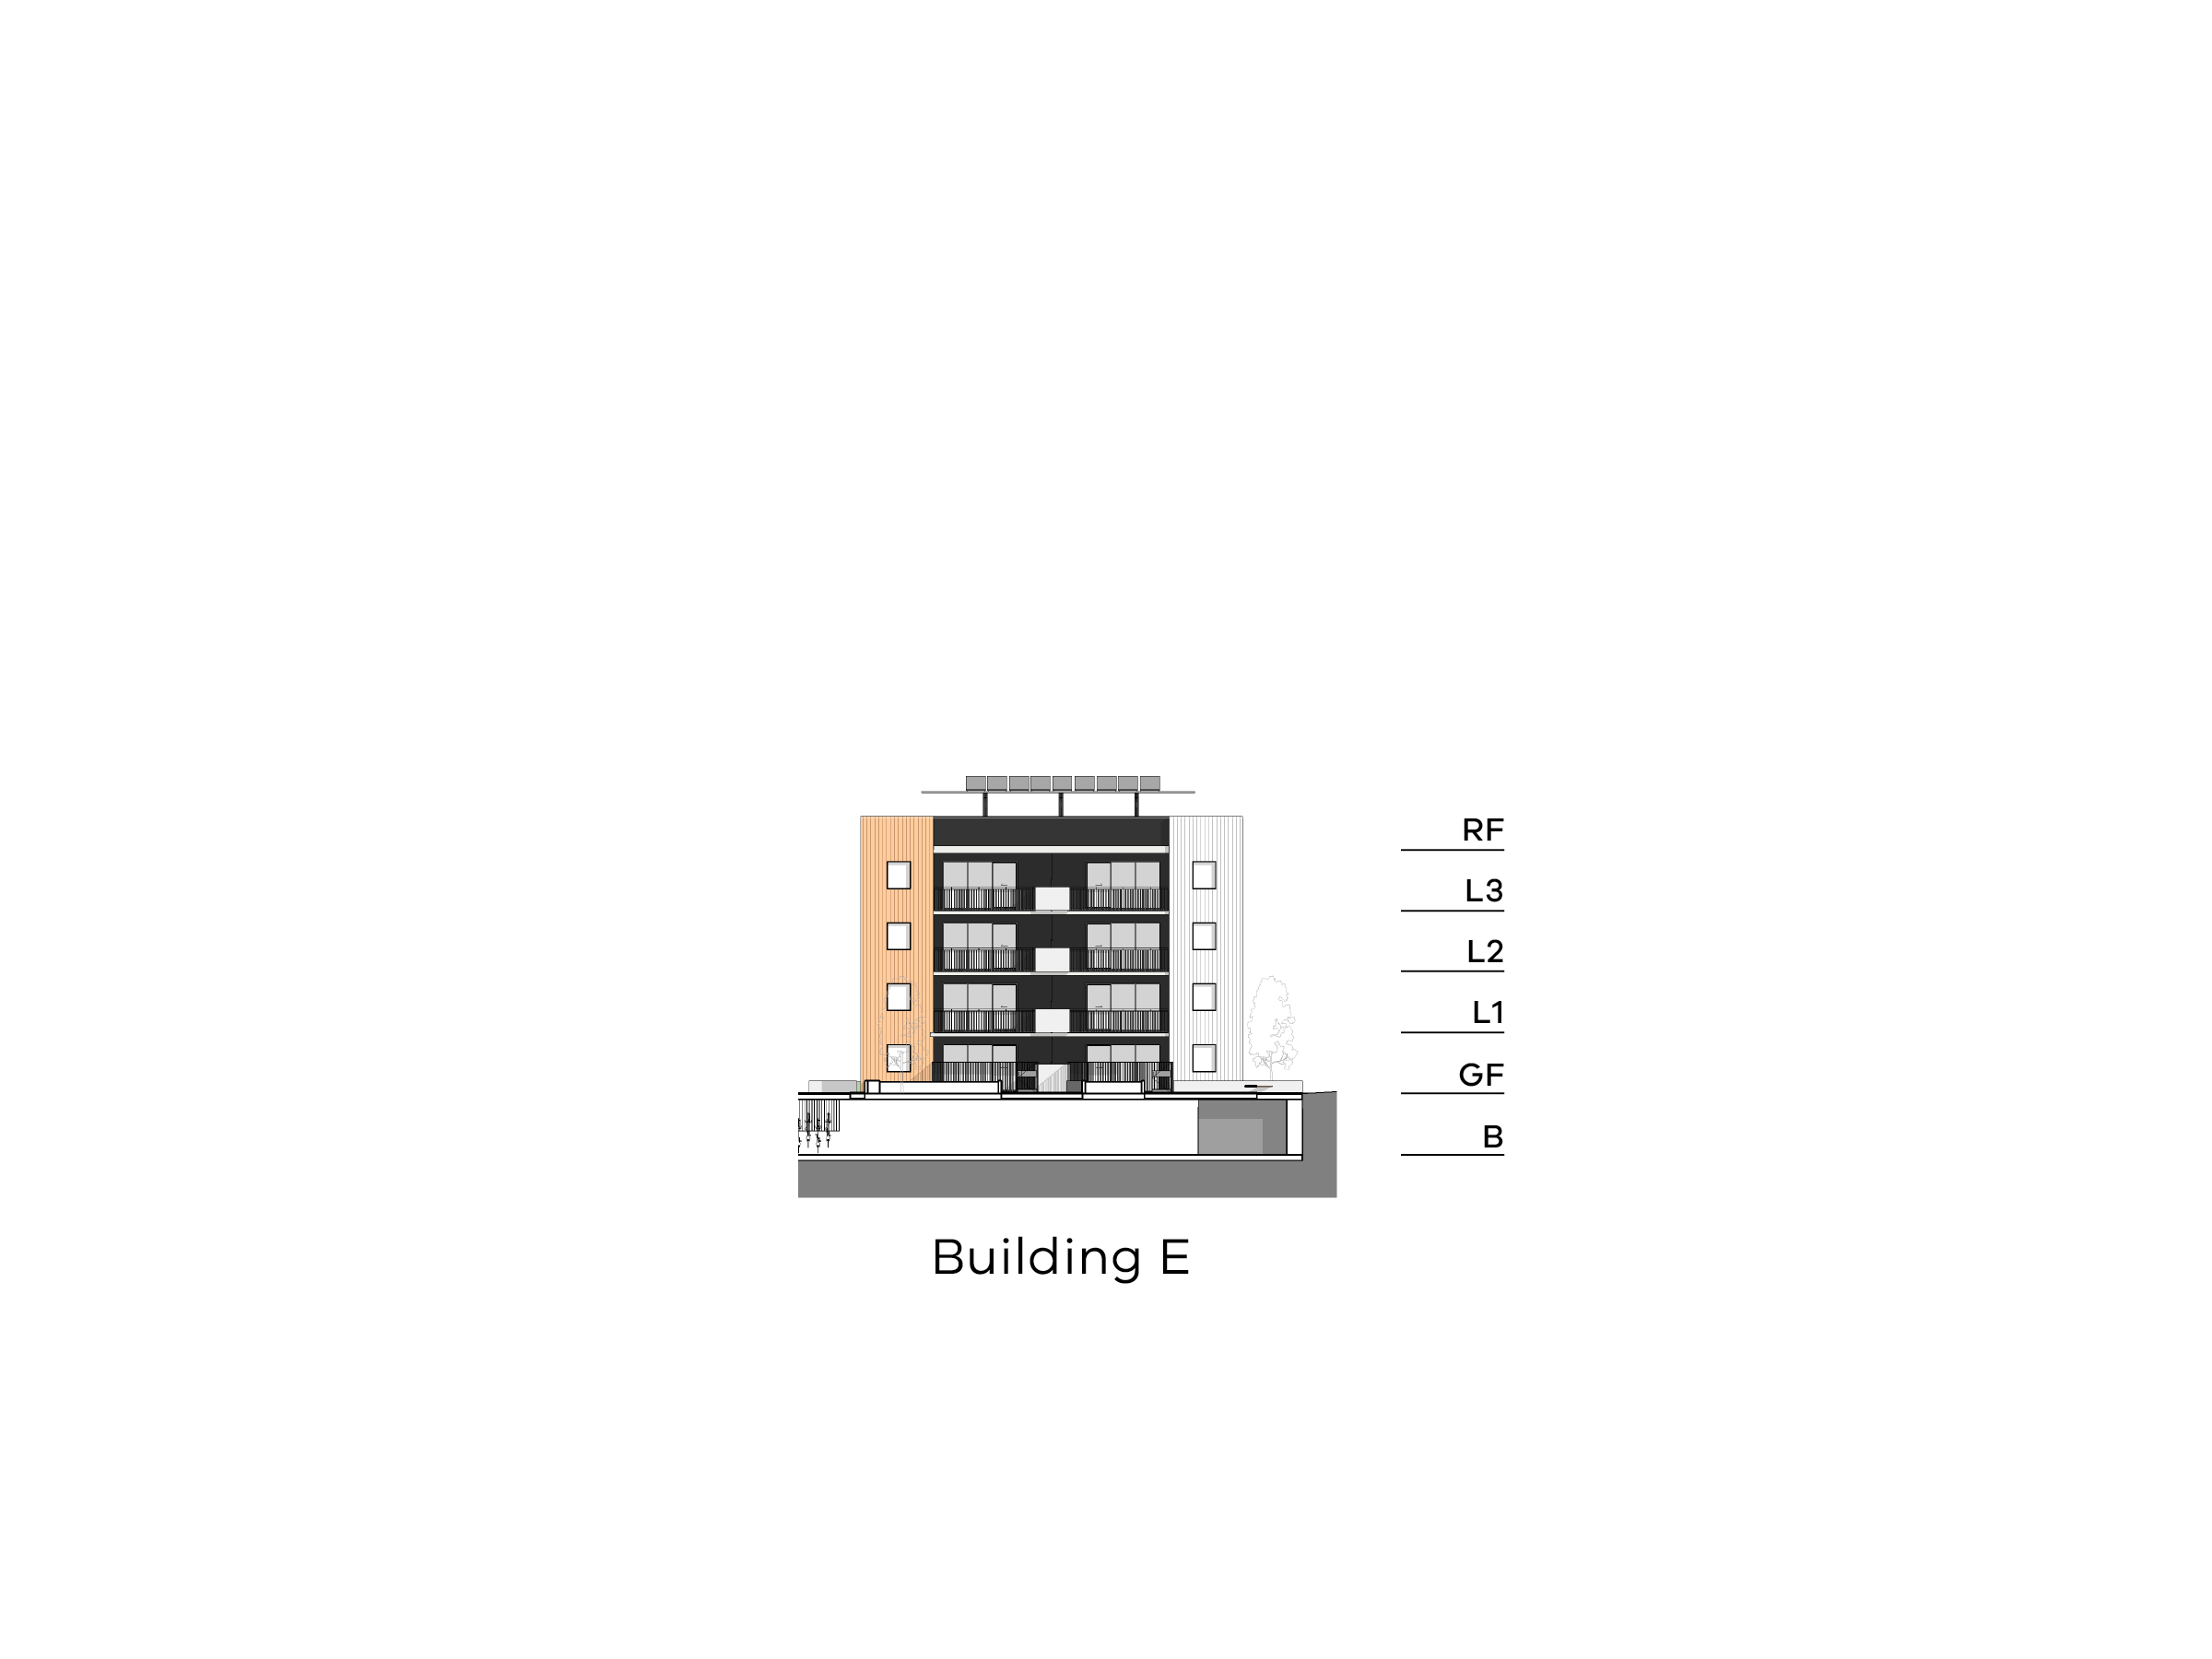 Diagram showing the height of building E as seen from the on-site walkway looking towards Hopetoun Child Care Centre. Building E has a basement, ground floor, level 1-3 and a flat roof.